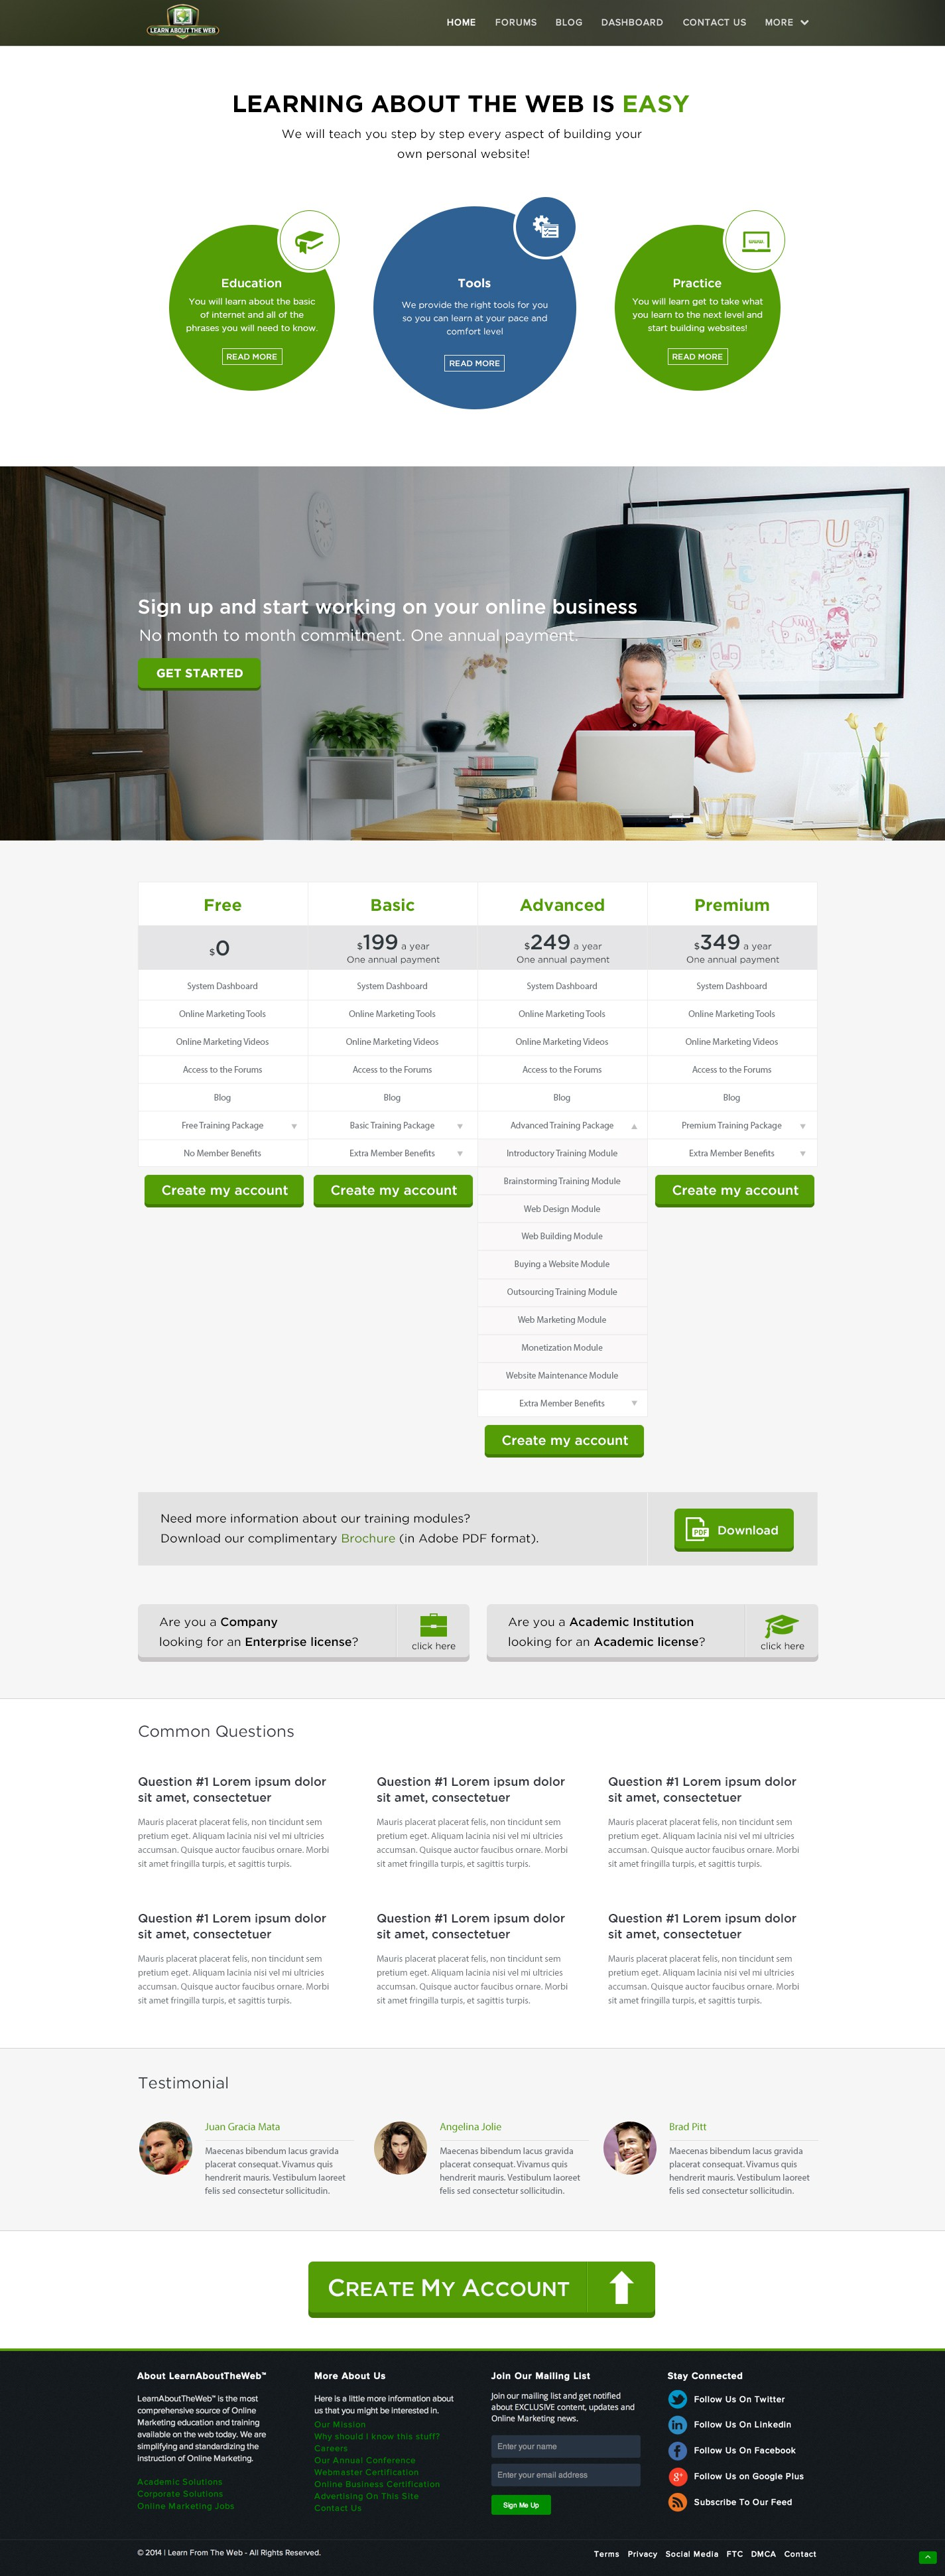 Create a Landing and Pricing Page for Learn About The Web Inc.